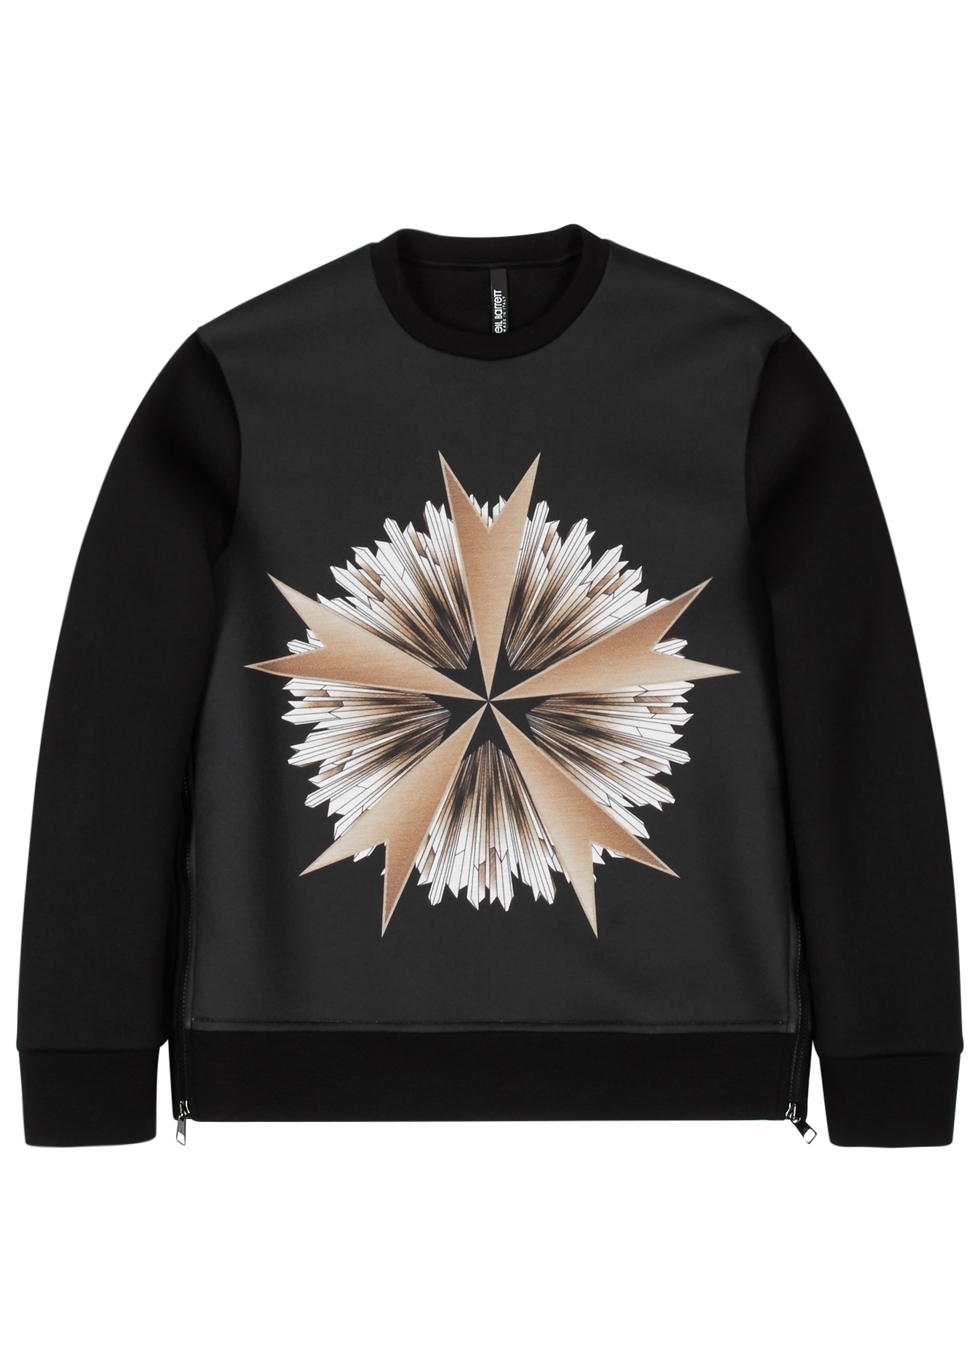 NEIL BARRETT BLACK PRINTED NEOPRENE SWEATSHIRT